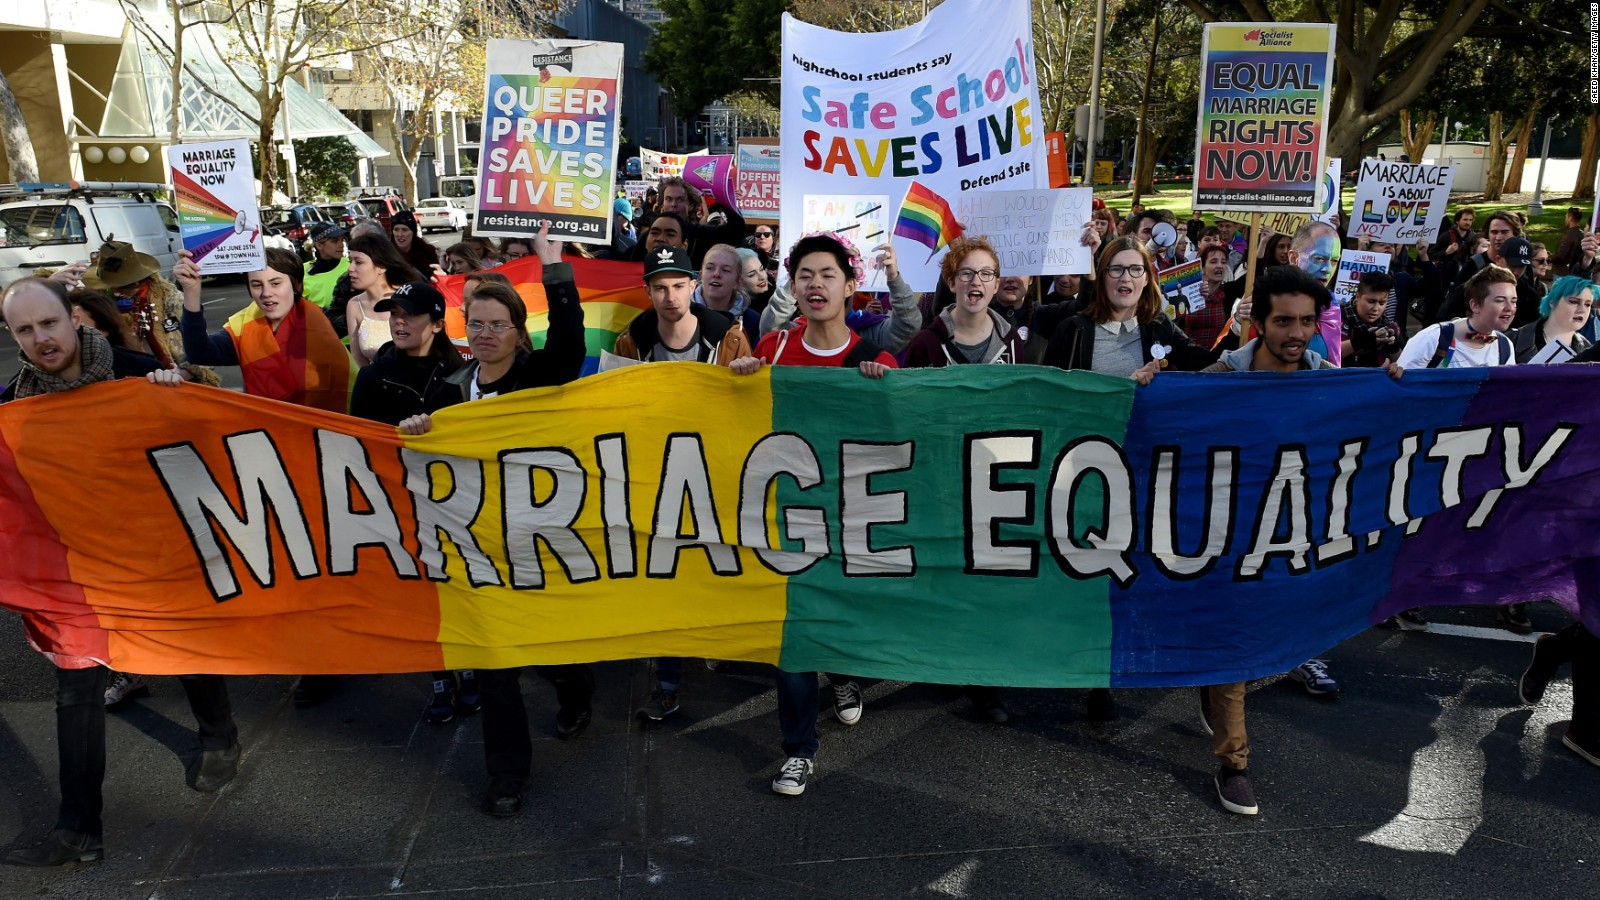 Marriage rights for same sex couples